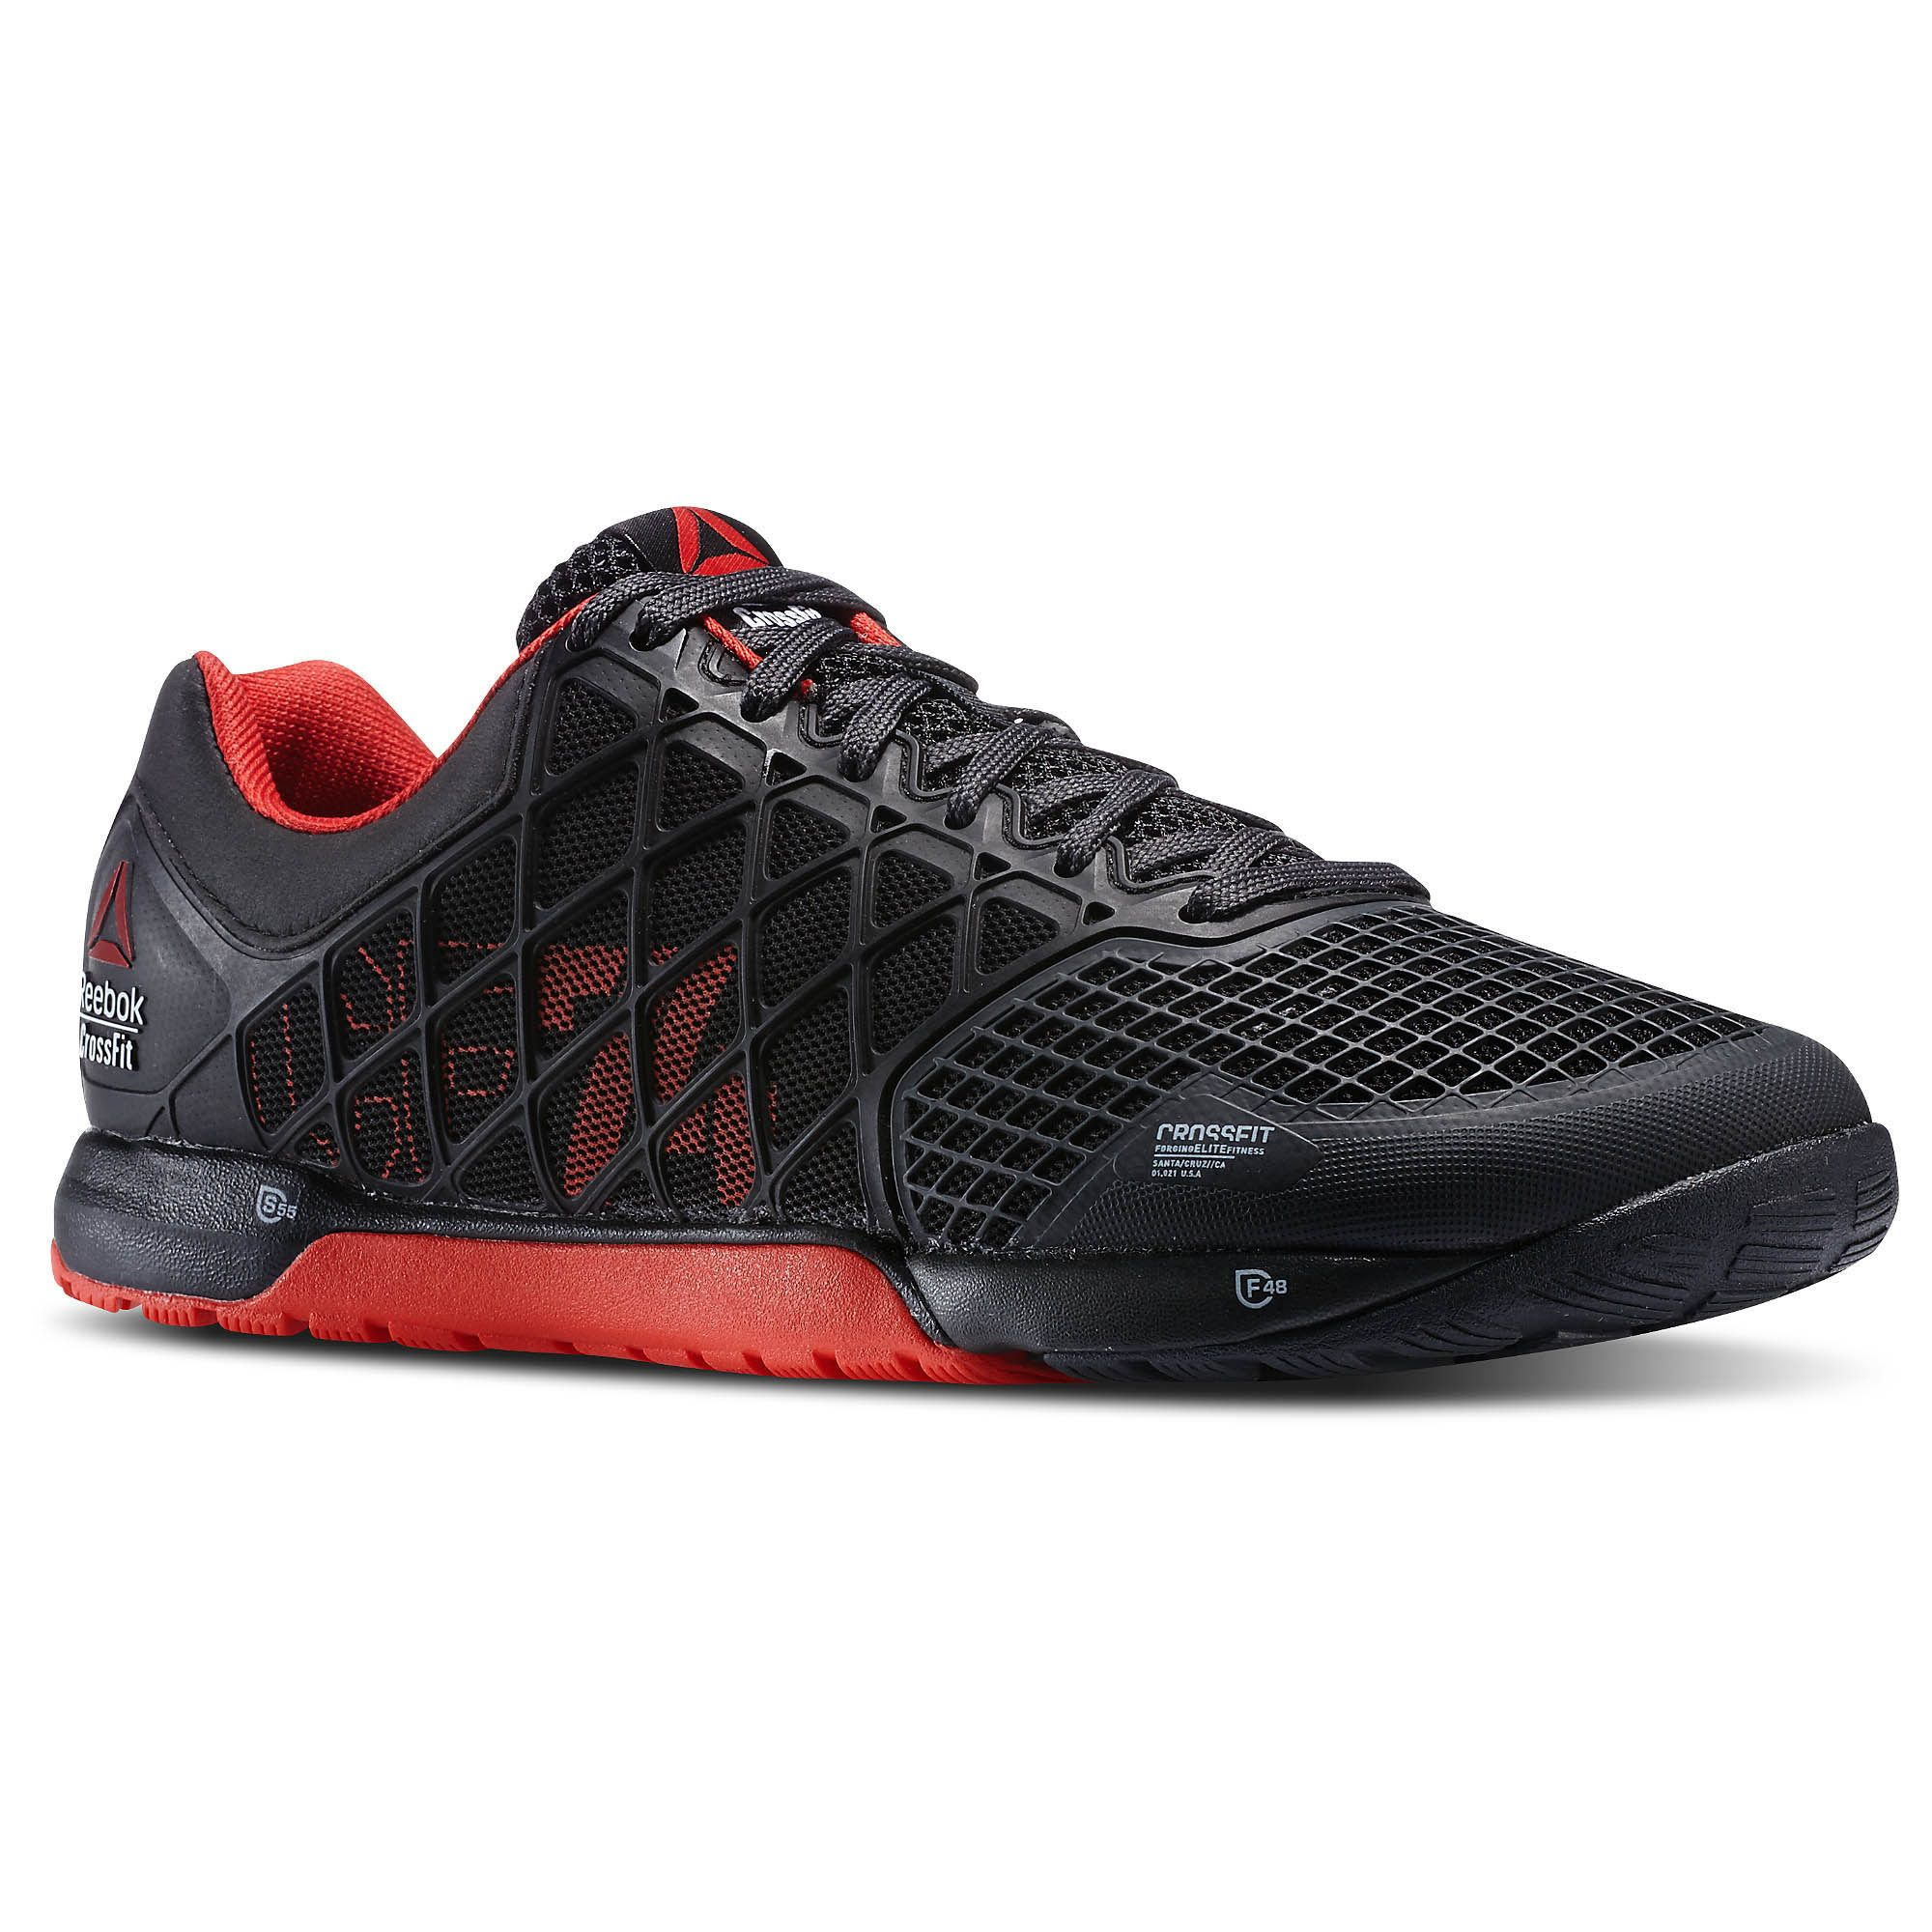 san francisco d5bea 1ddae Reebok CrossFit Nano 4.0.  99.99 at CrossFit Long Beach! 10 mins away from  the CrossFit Games. 2431 orange ave, signal hill, ca.